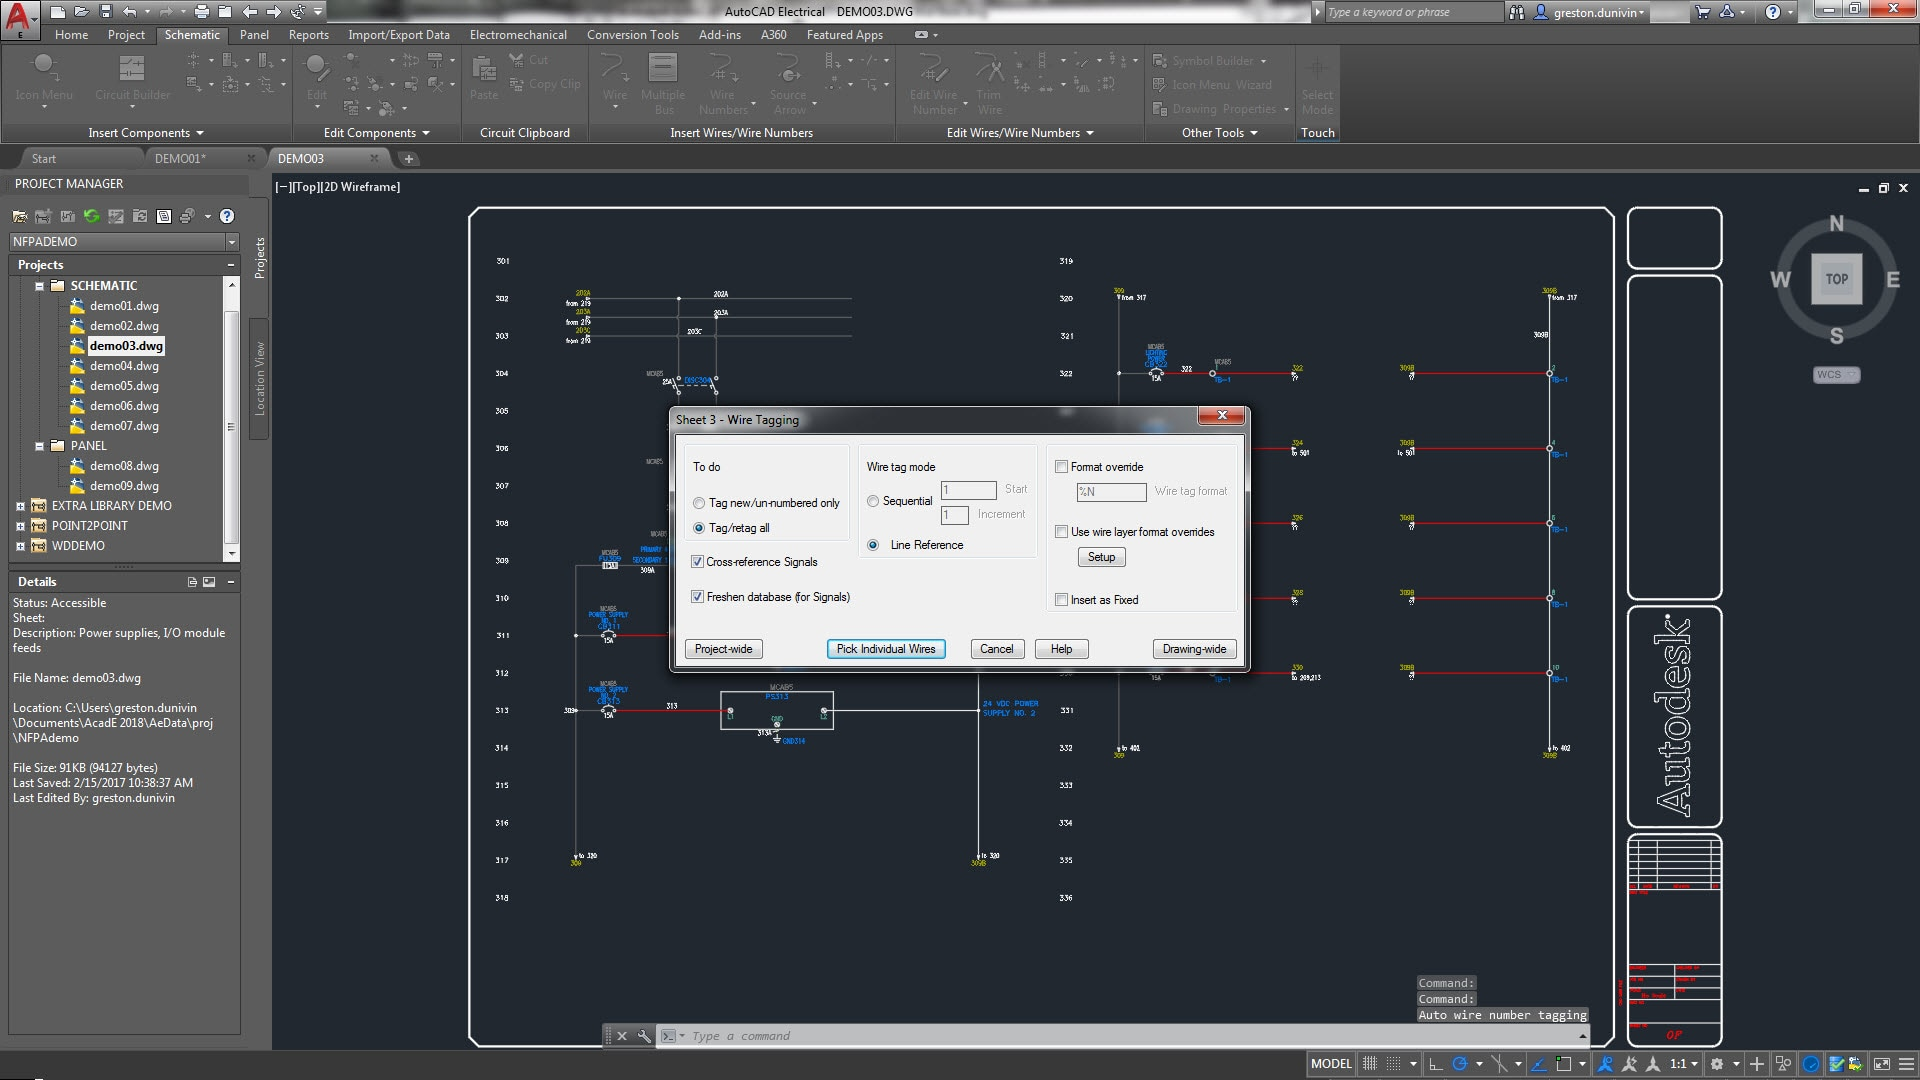 product features autocad electrical 2018 autodesk autocad electrical features include wire numbering and component tagging